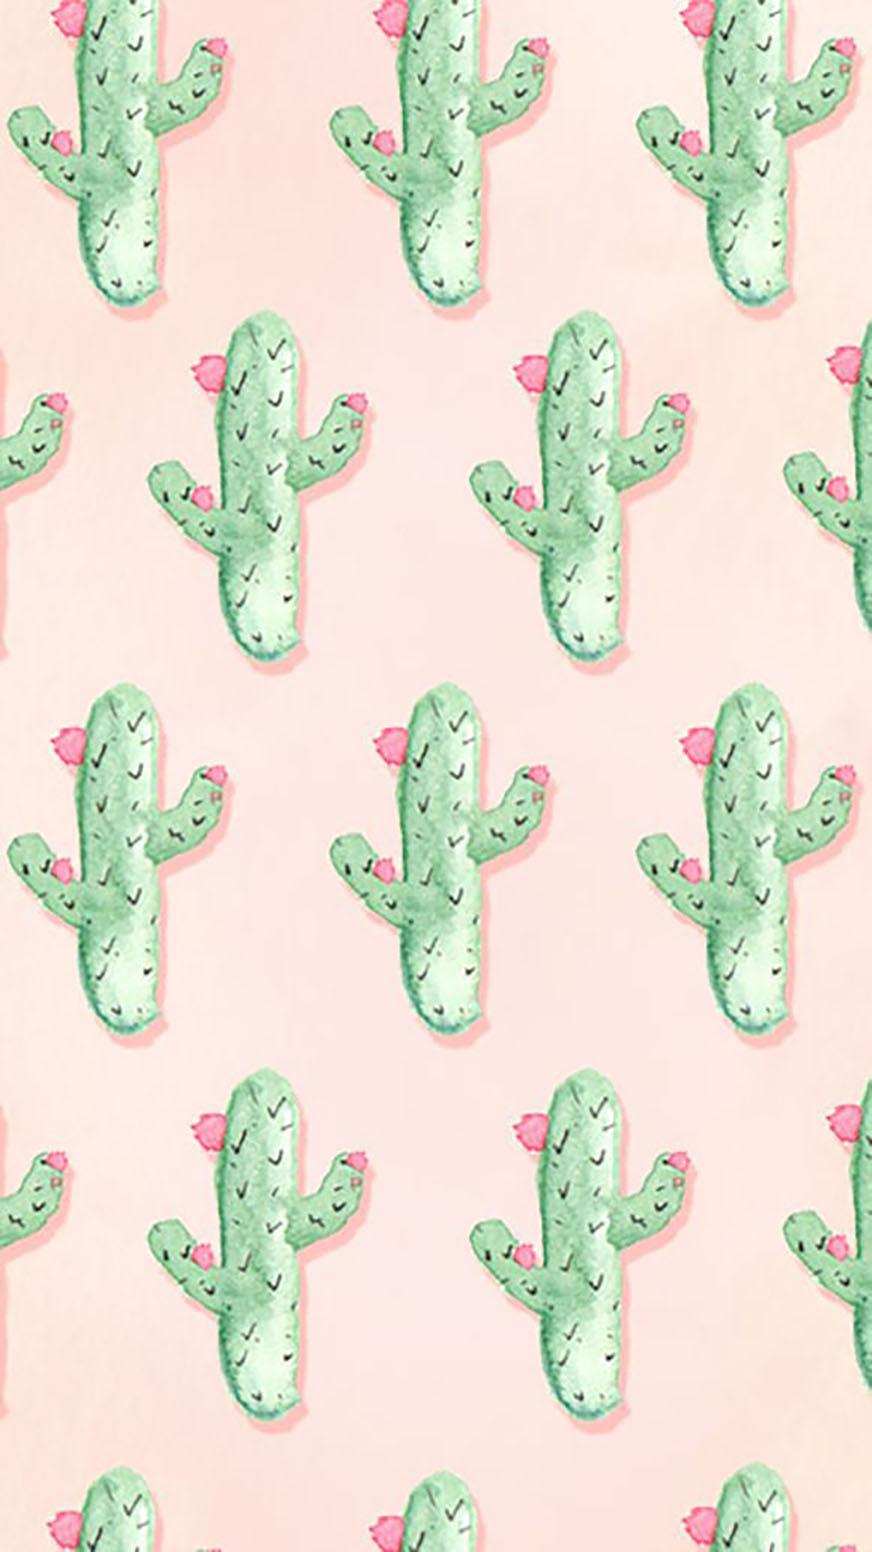 cactus green design art pattern drawing graphic symbol color background